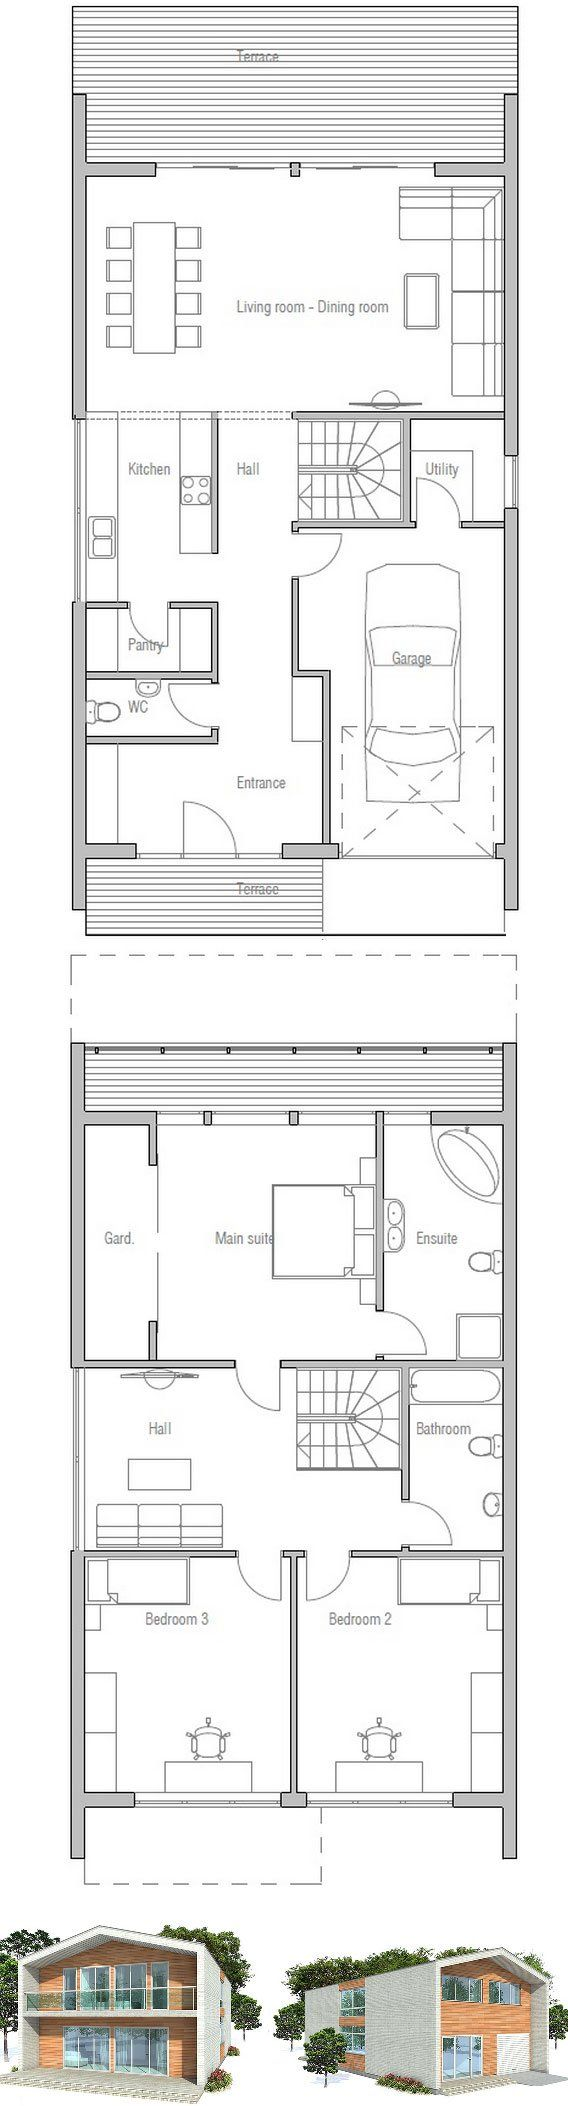 best 25 architectural floor plans ideas on pinterest house narrow house in modern contemporary architecture floor plans from concepthome com